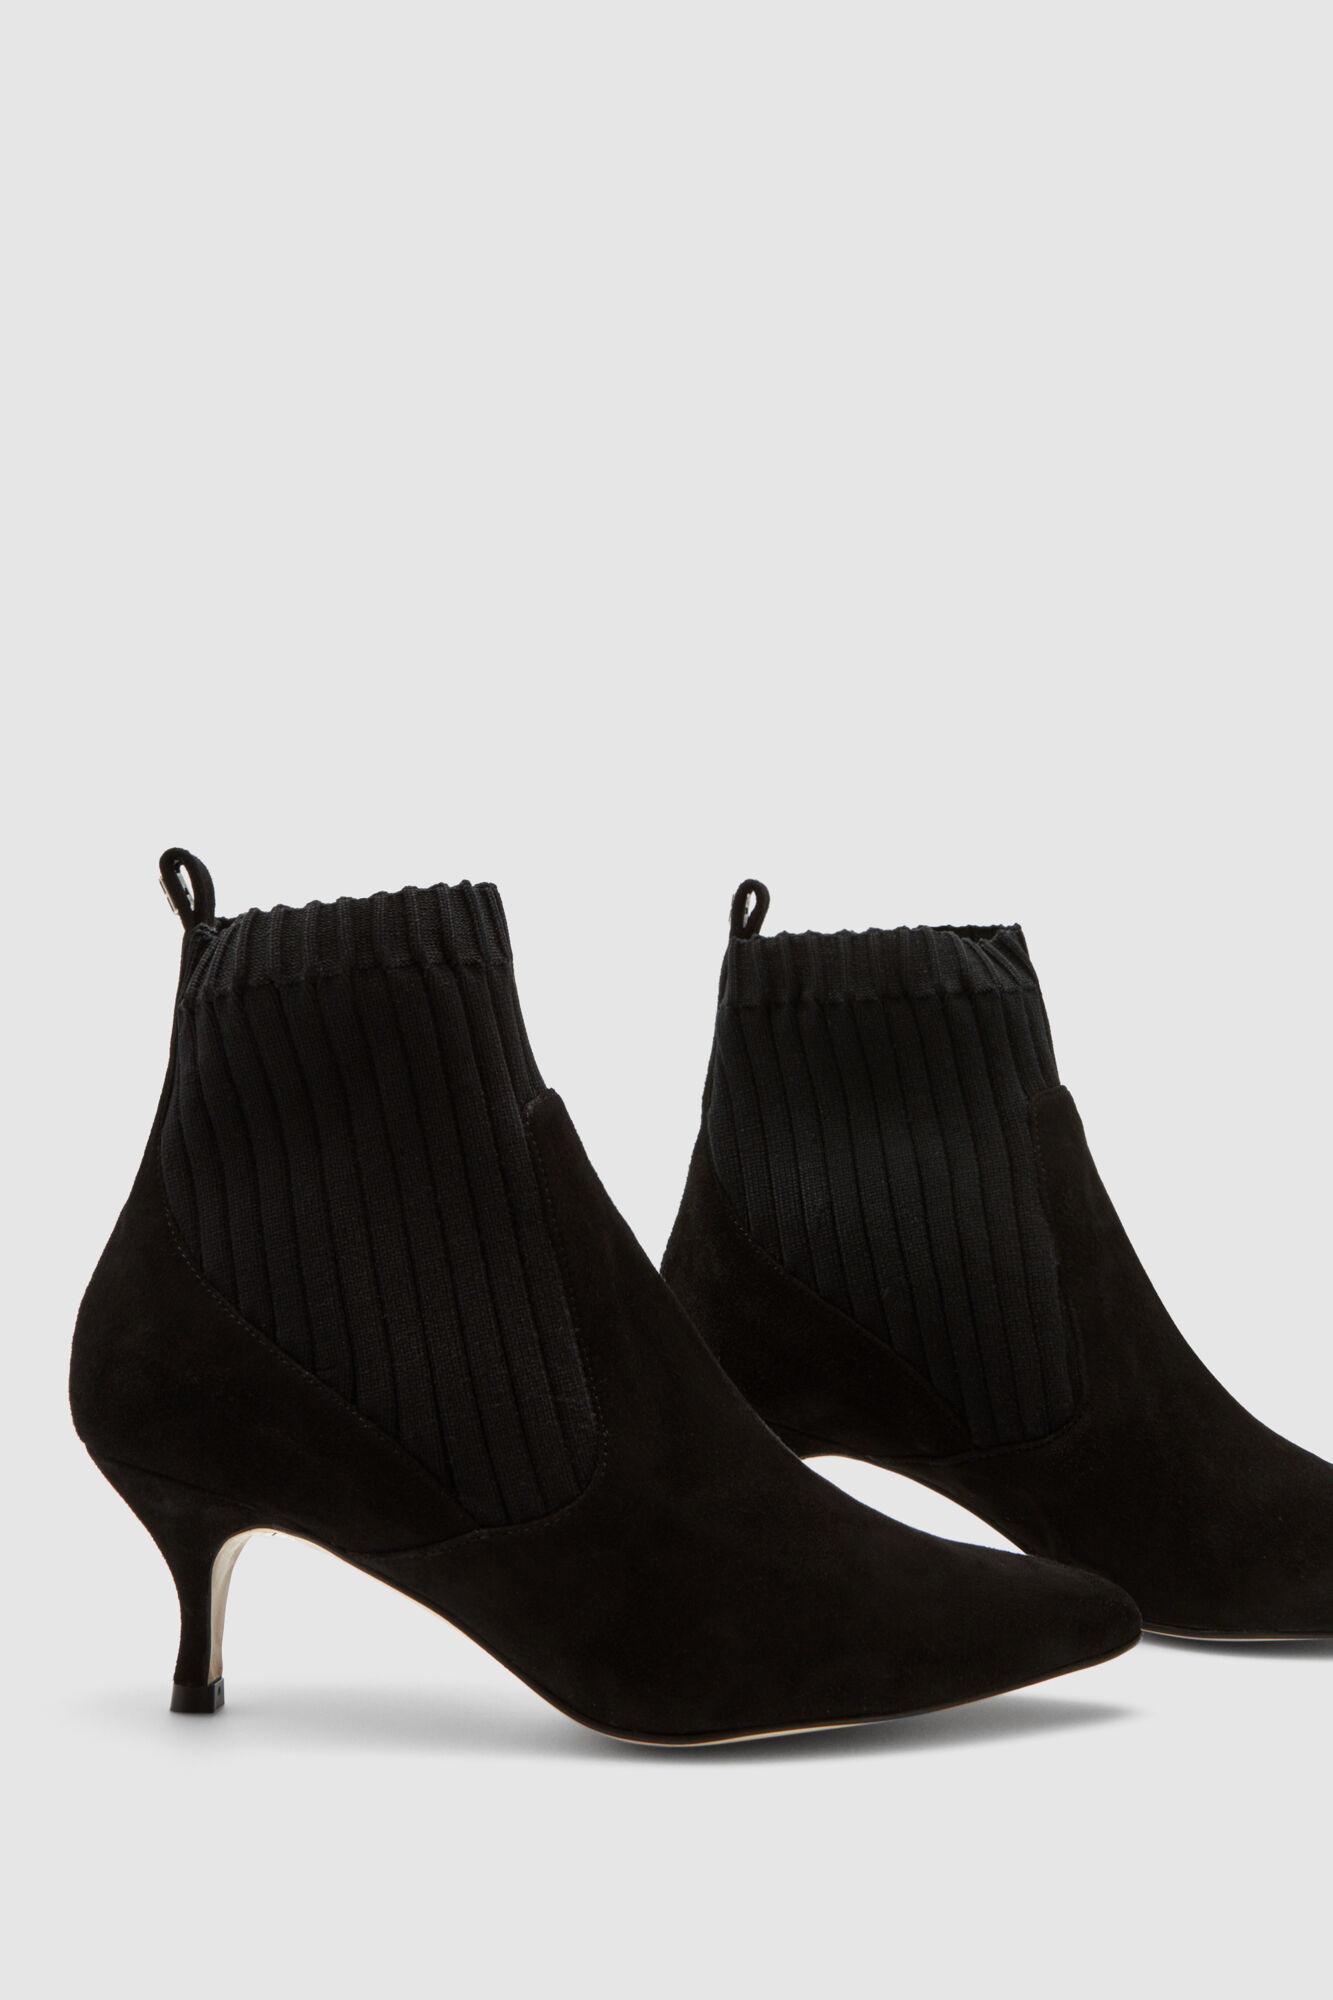 297d92f7cec3 Pedro del Hierro Pointed ankle boots Black